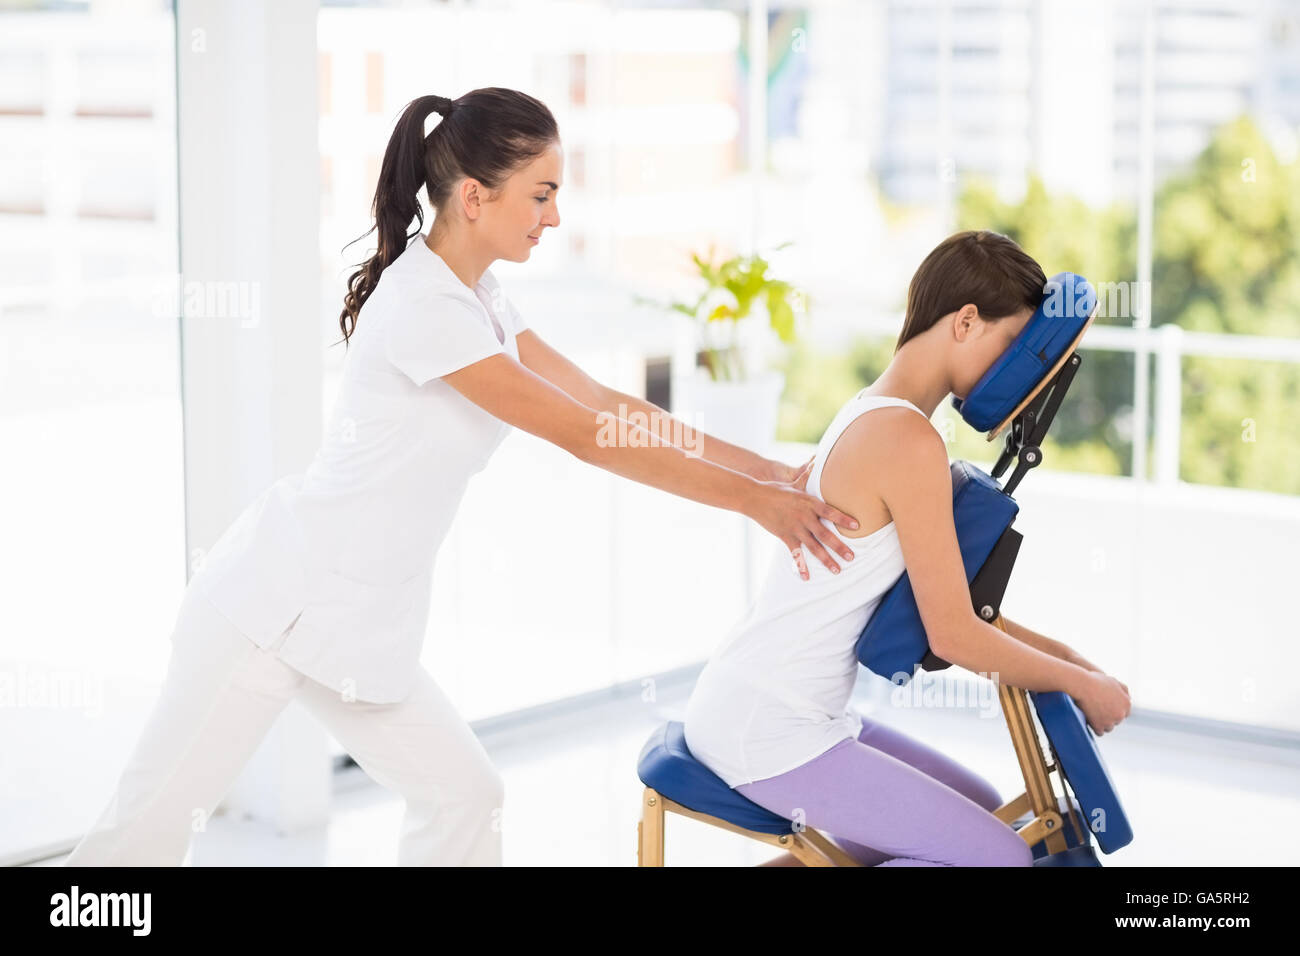 Woman being massaged on chair by masseuse - Stock Image